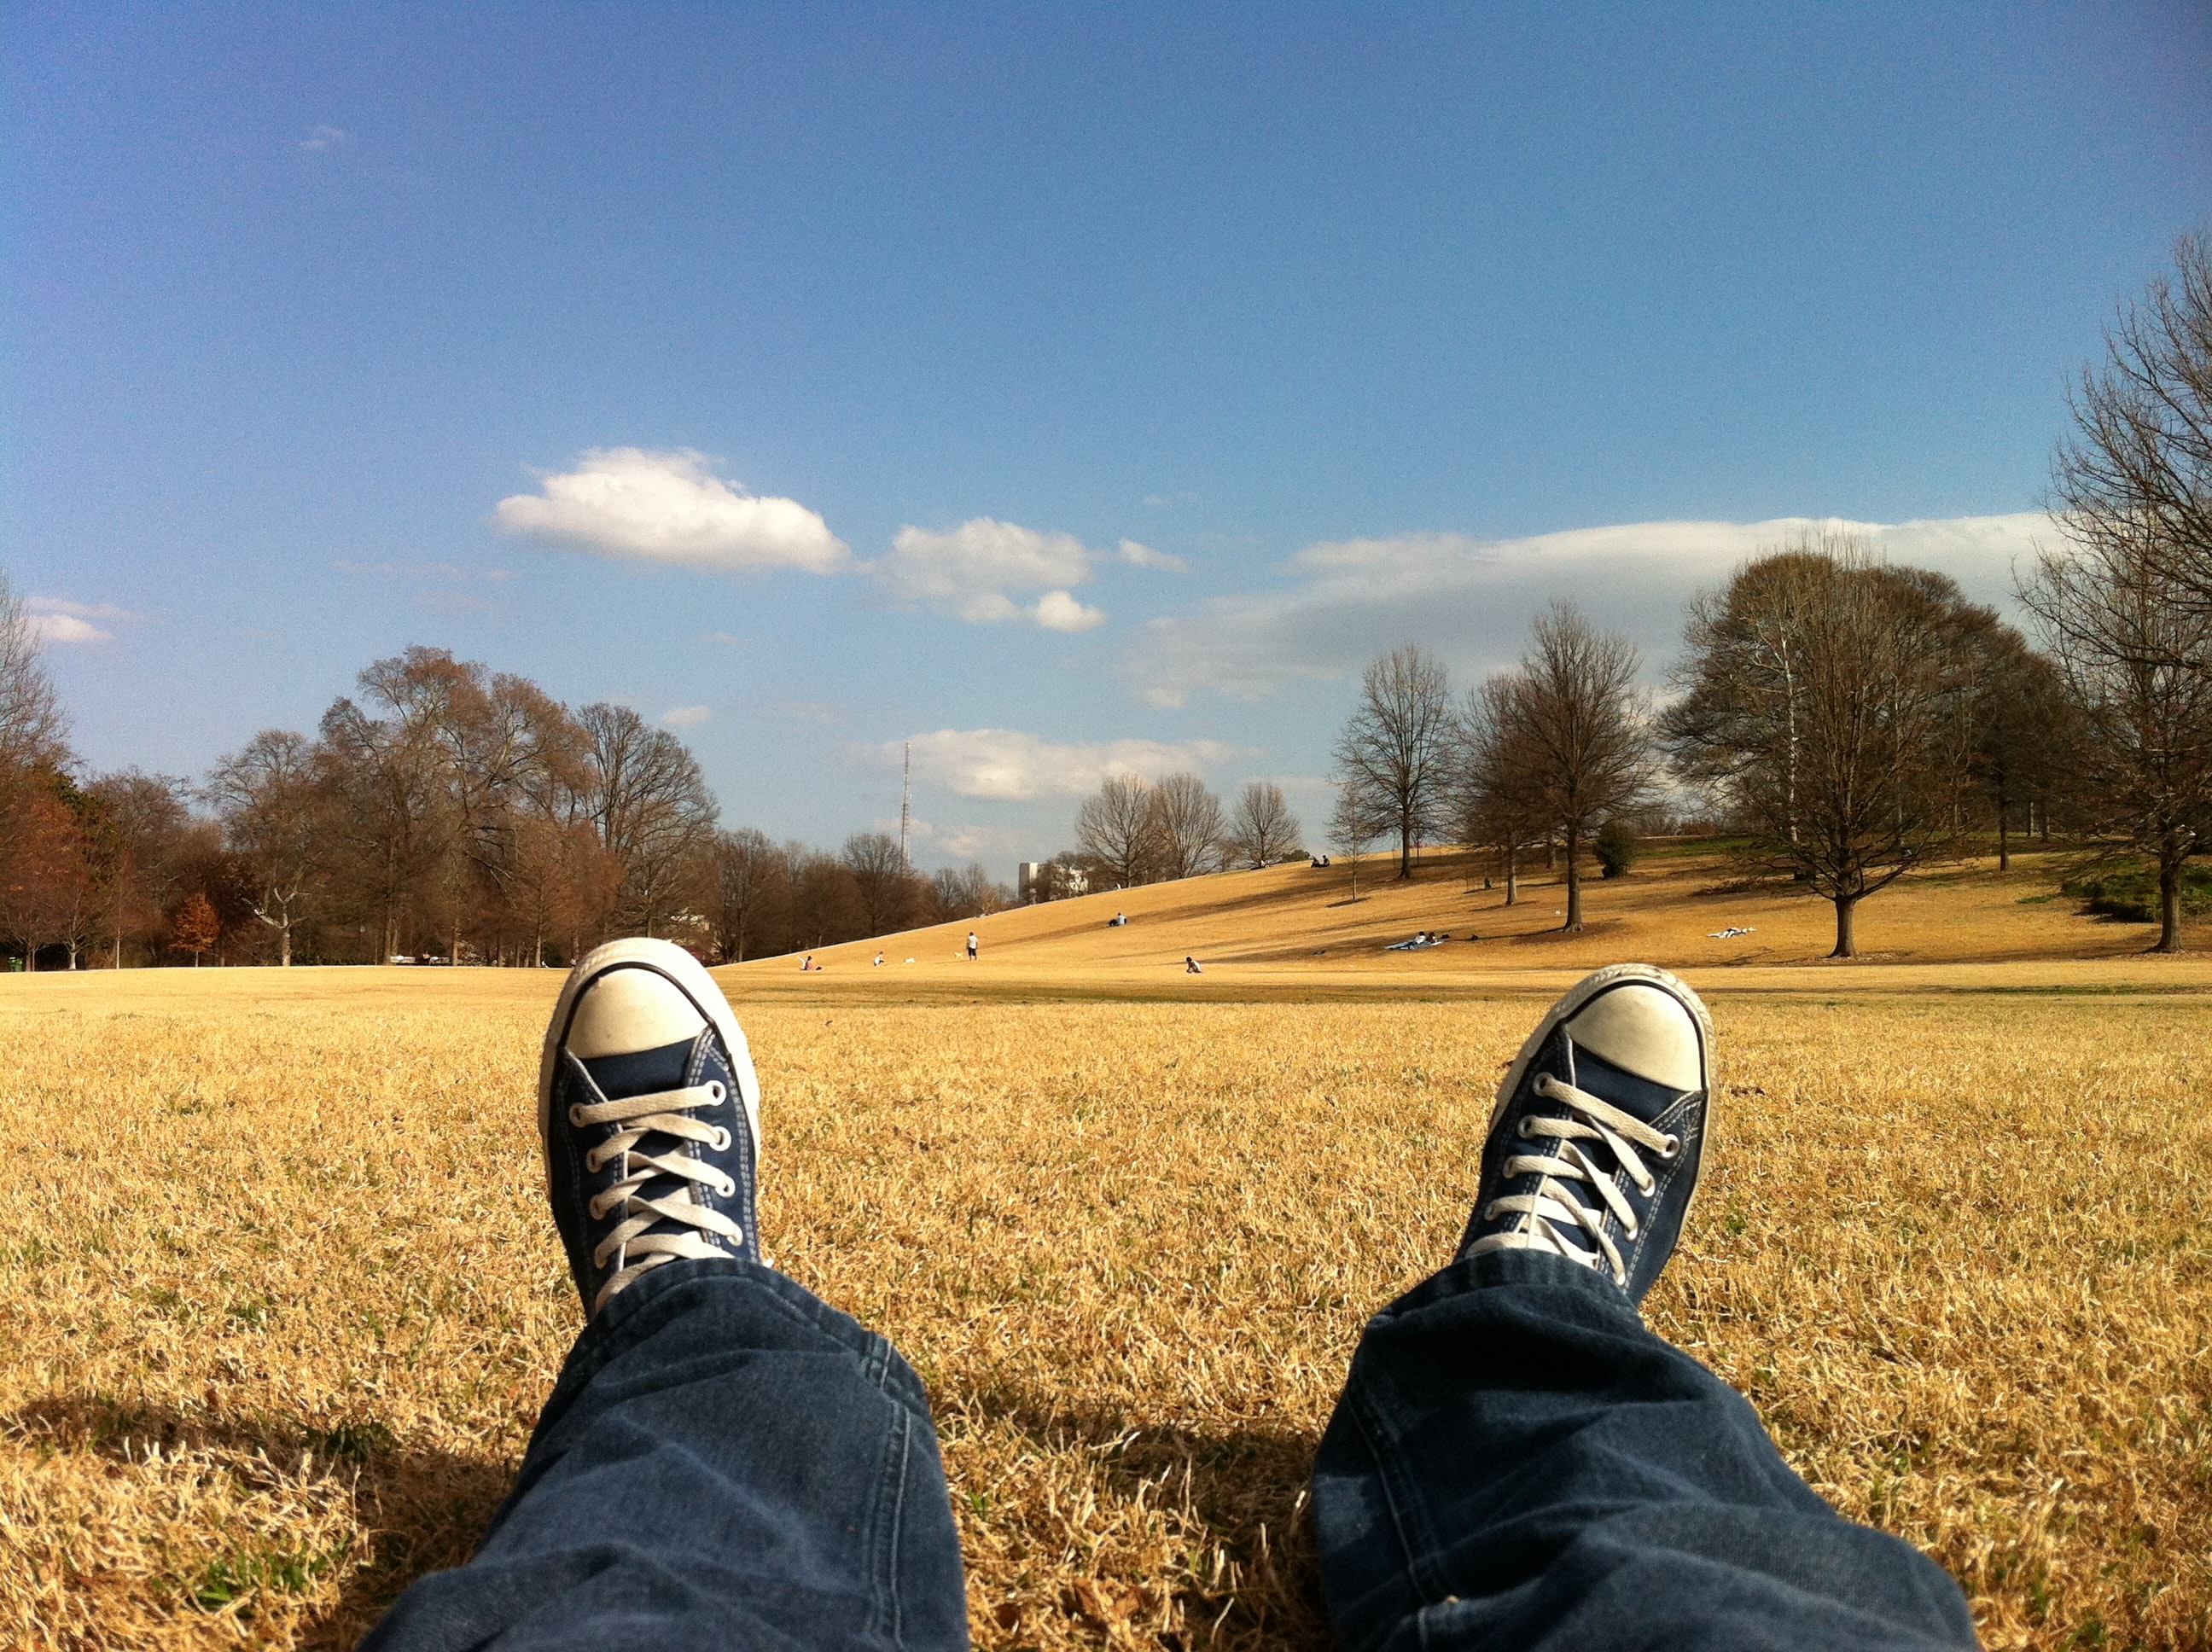 A person wearing jeans and converse relaxing on grass in a park